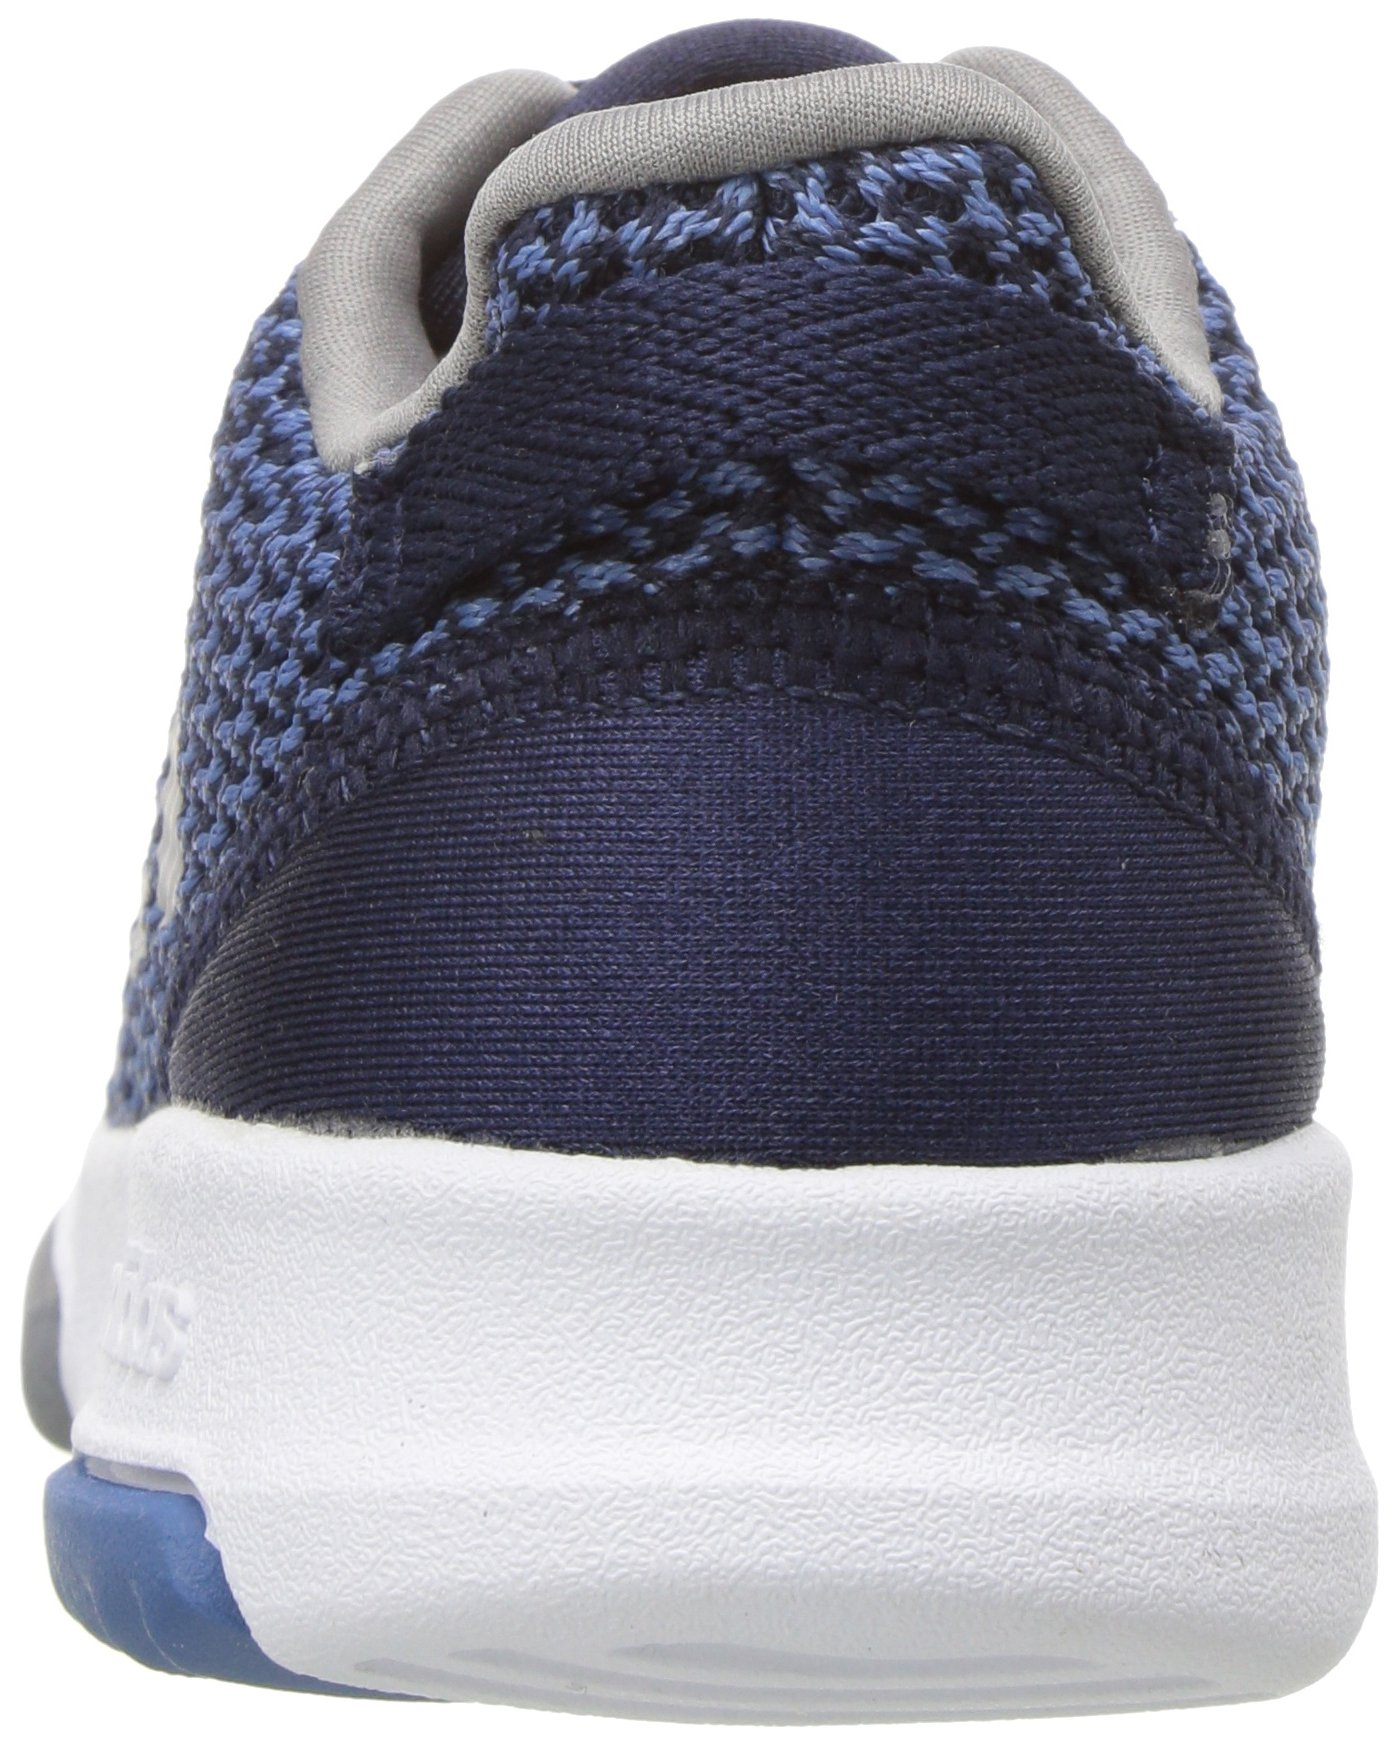 adidas Kids CF Racer TR Running Shoe, Collegiate Navy/Collegiate Navy/Grey, 3K M US Toddler by adidas (Image #2)